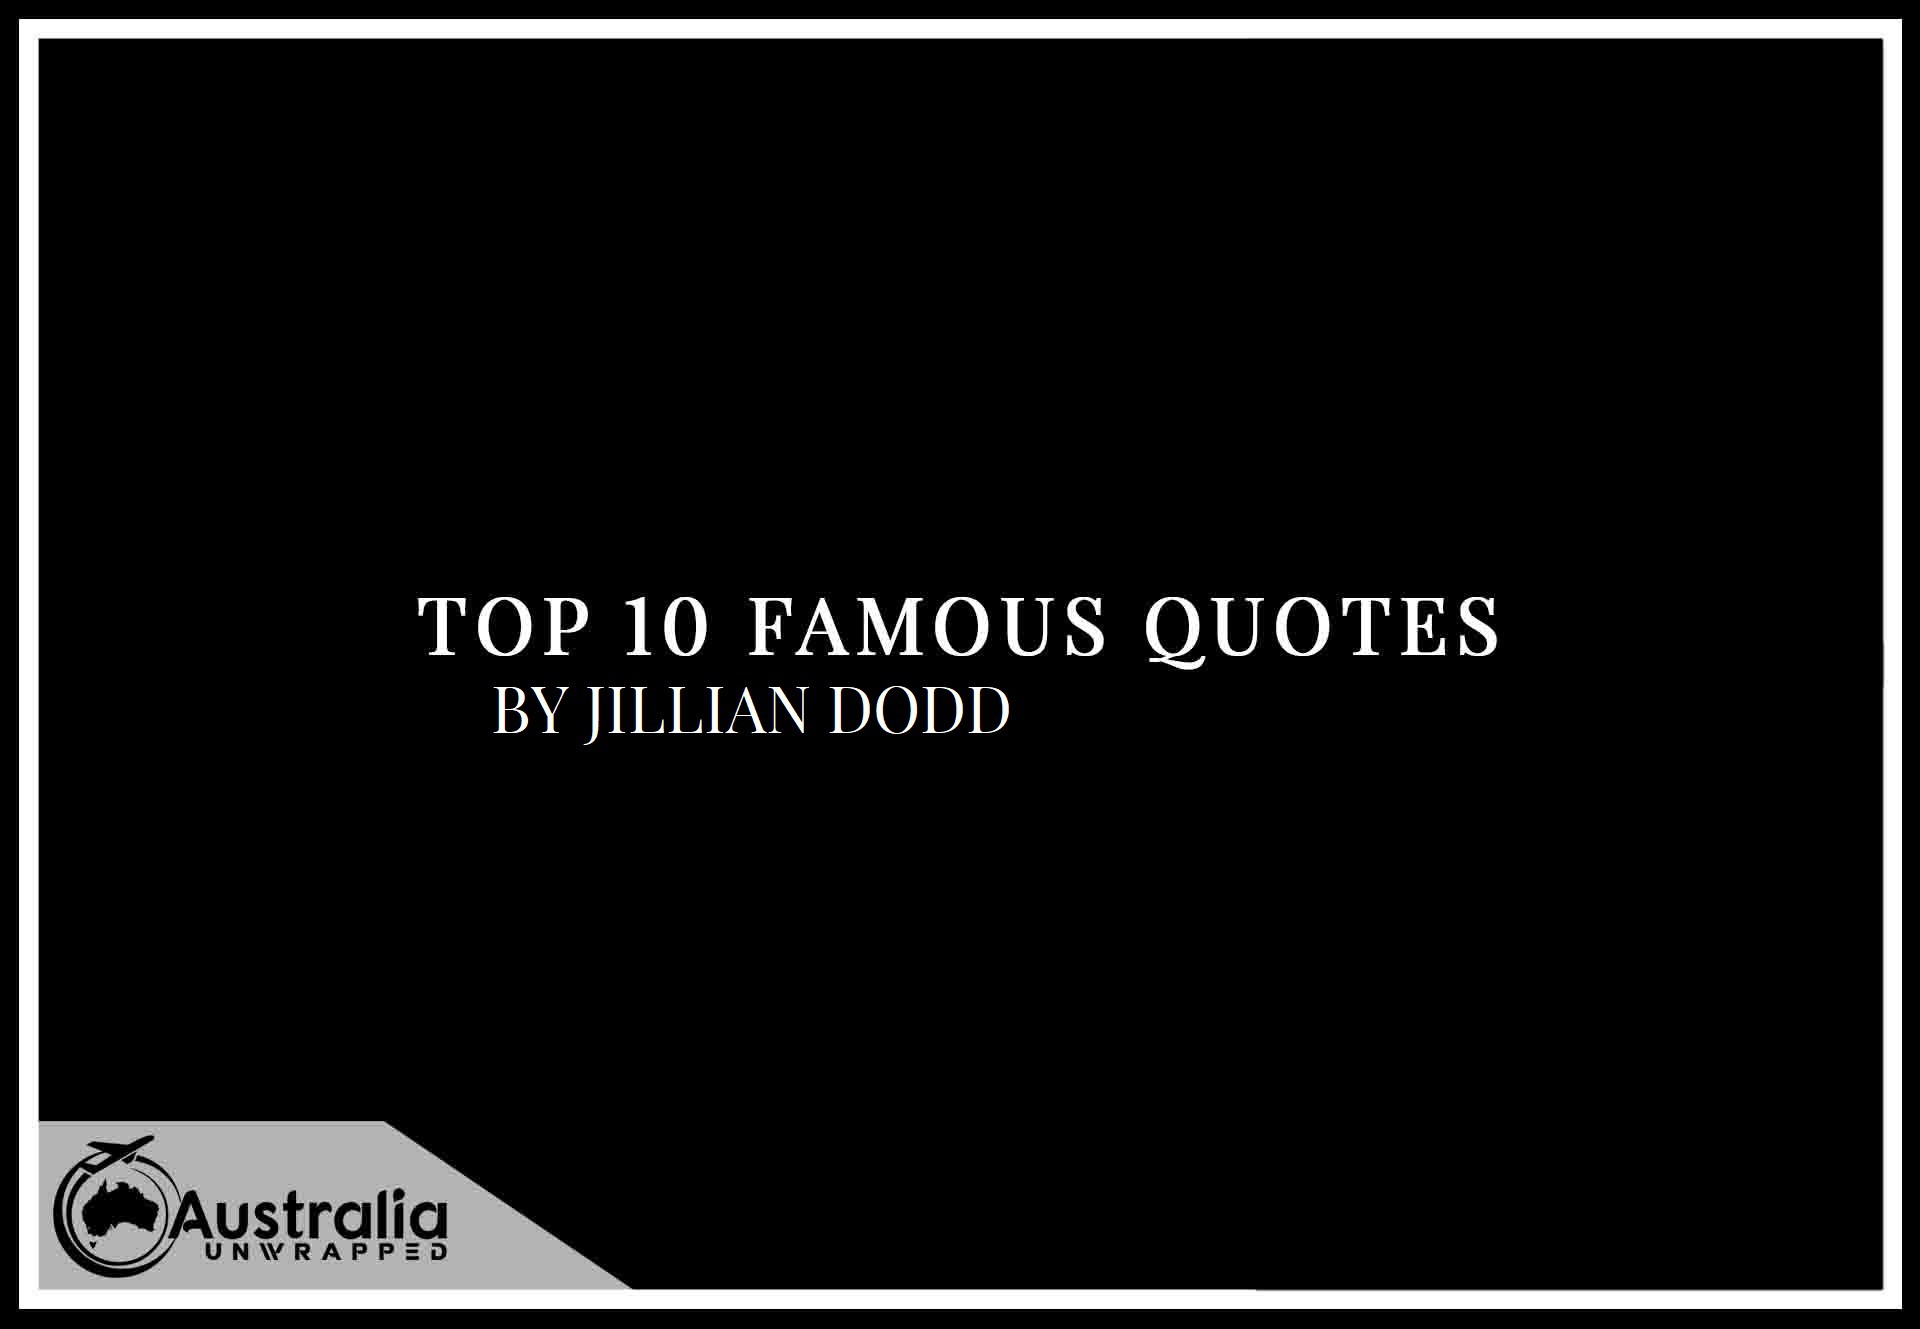 Top 10 Famous Quotes by Author Jillian Dodd